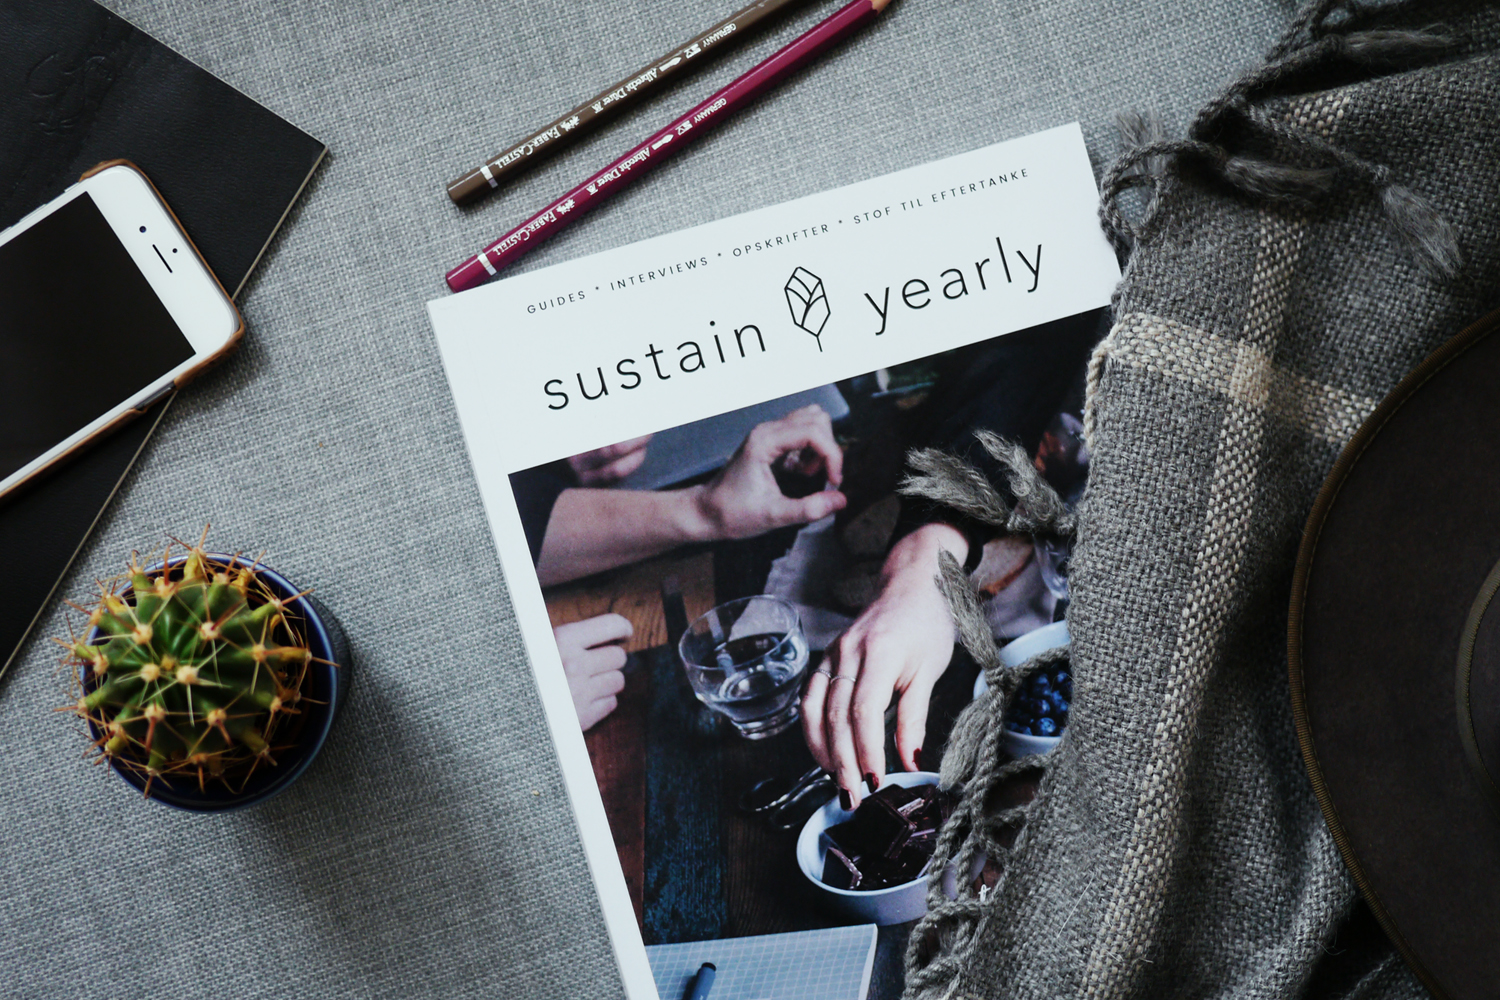 Sustain Yearly 3 Sustain Daily